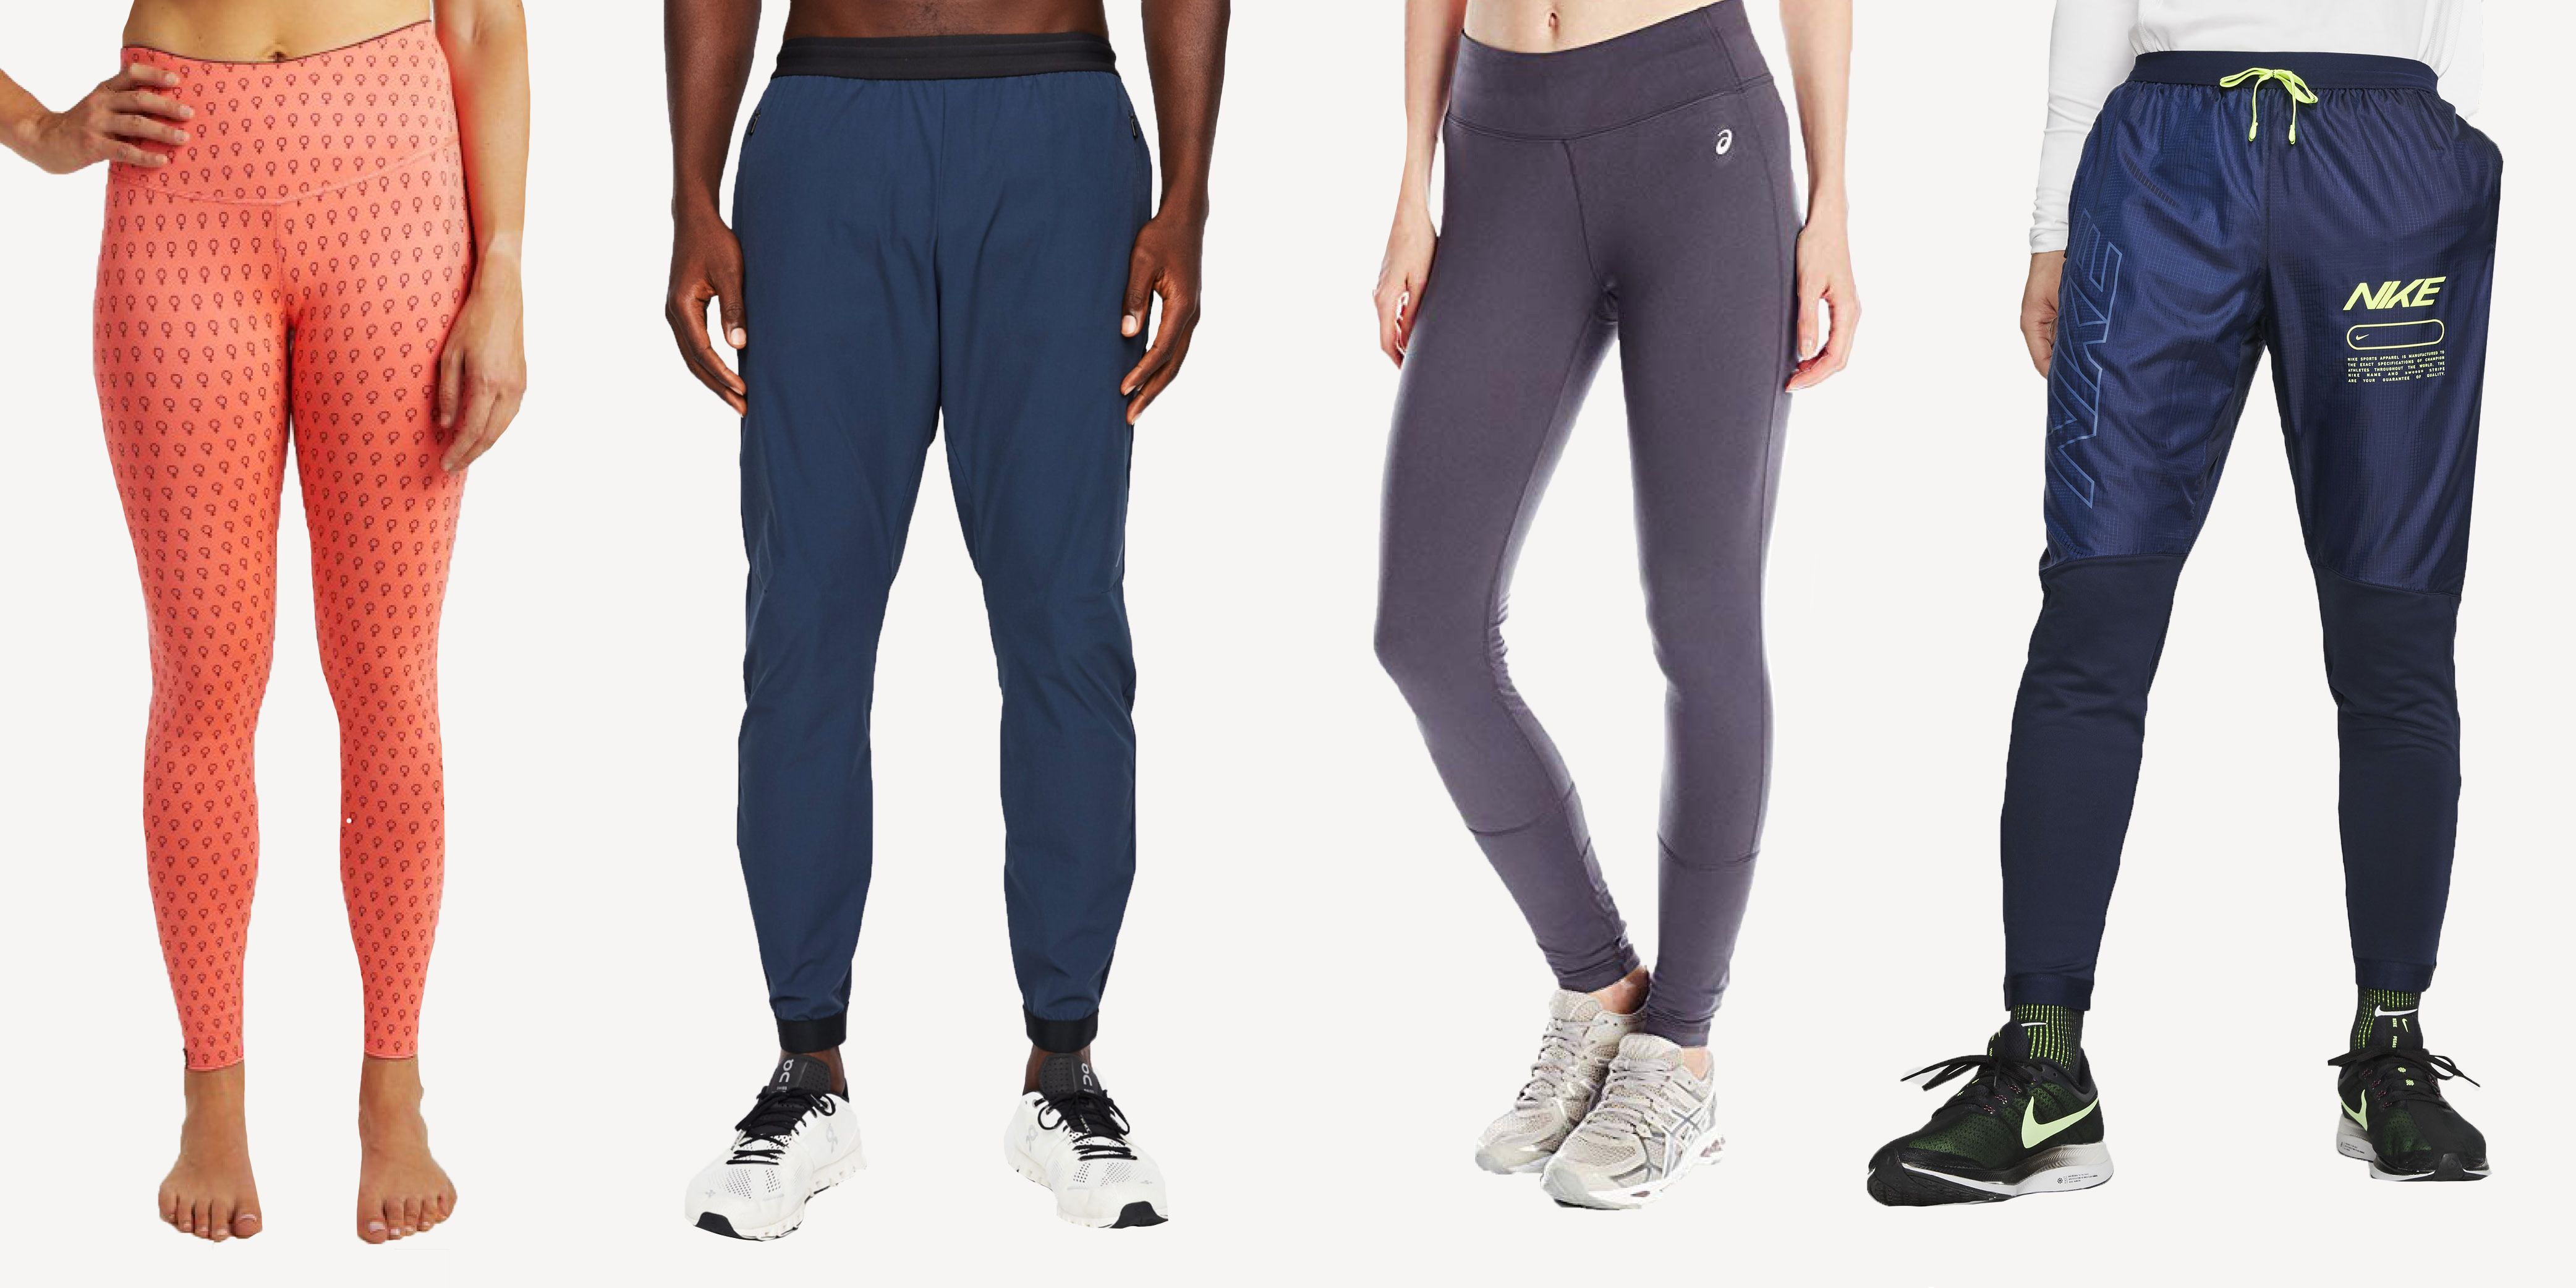 13 Pants and Tights for Falling Temperatures